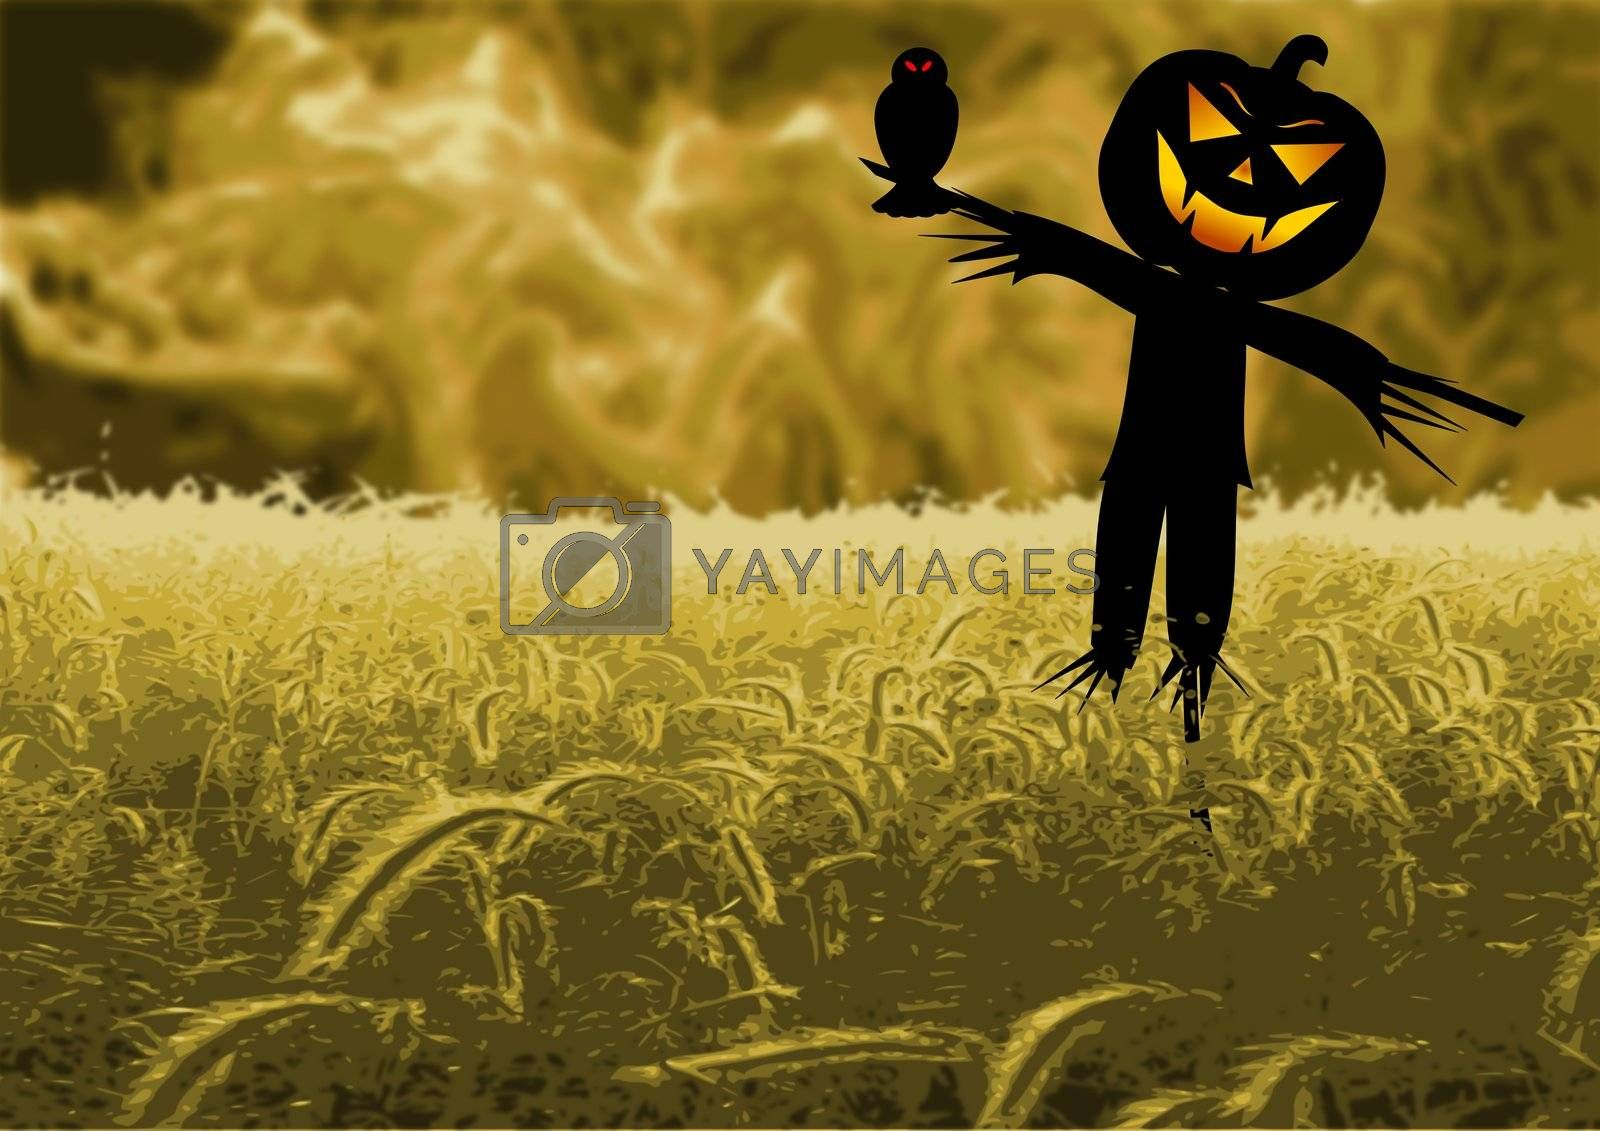 Royalty free image of Scare Crow by jasony00